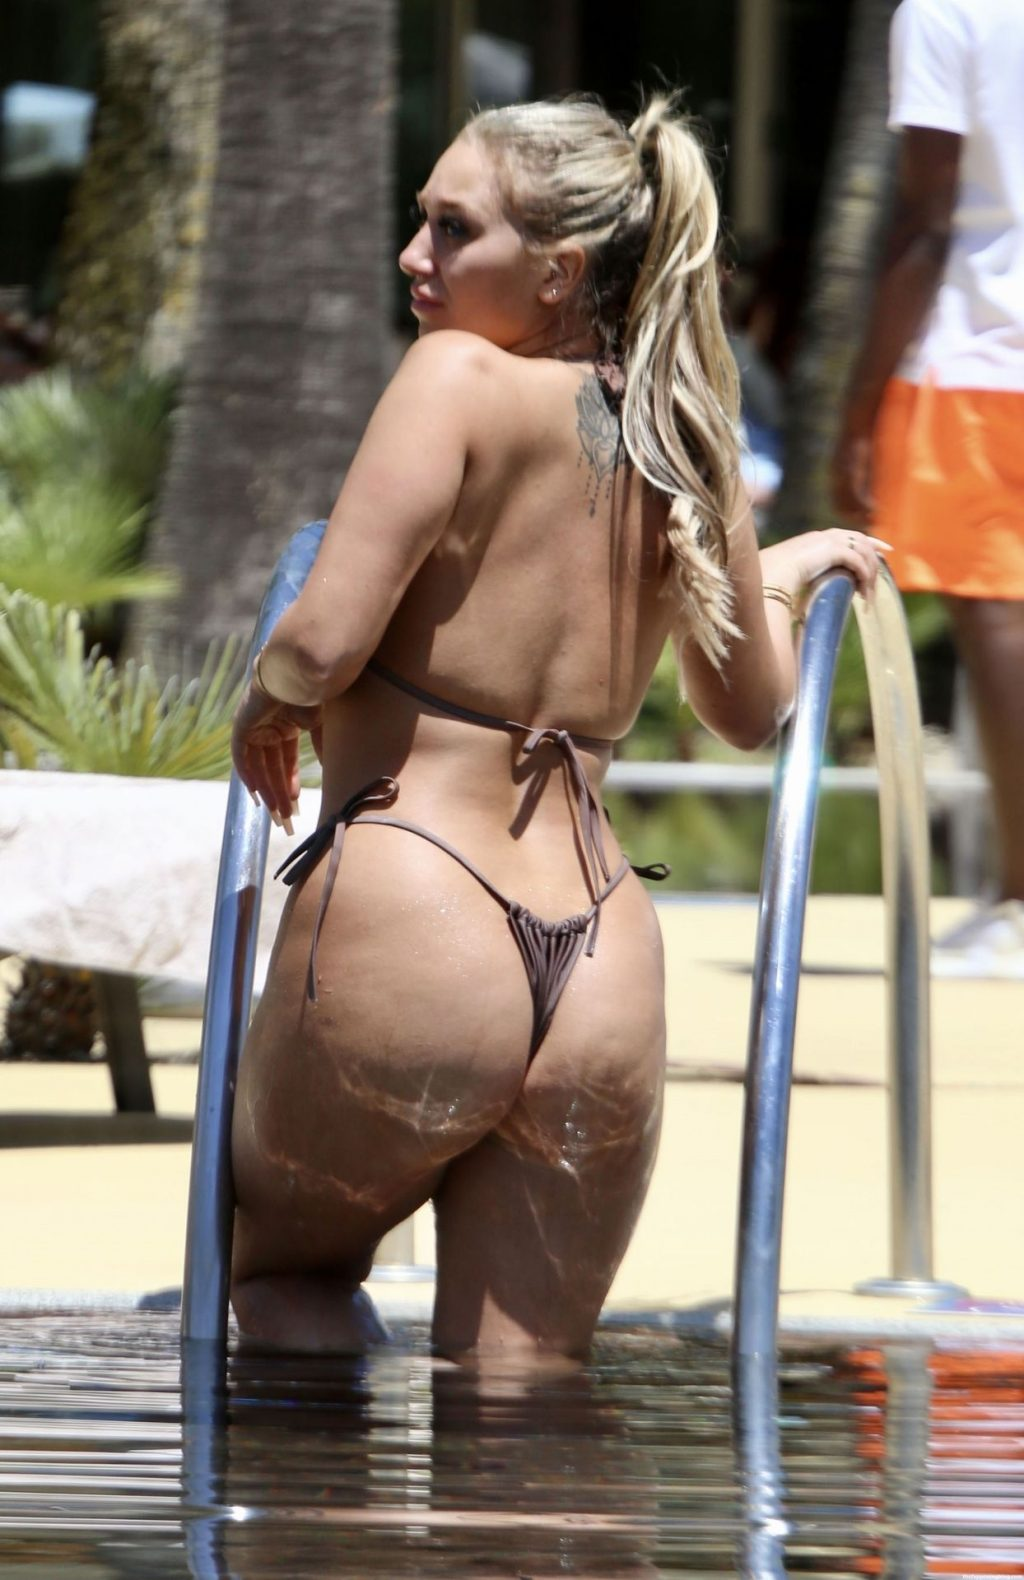 Bethan Kershaw Shows Off Her Voluptuous Sultry Figure in Her Brown Bikini on Holiday in Portugal (13 Photos)